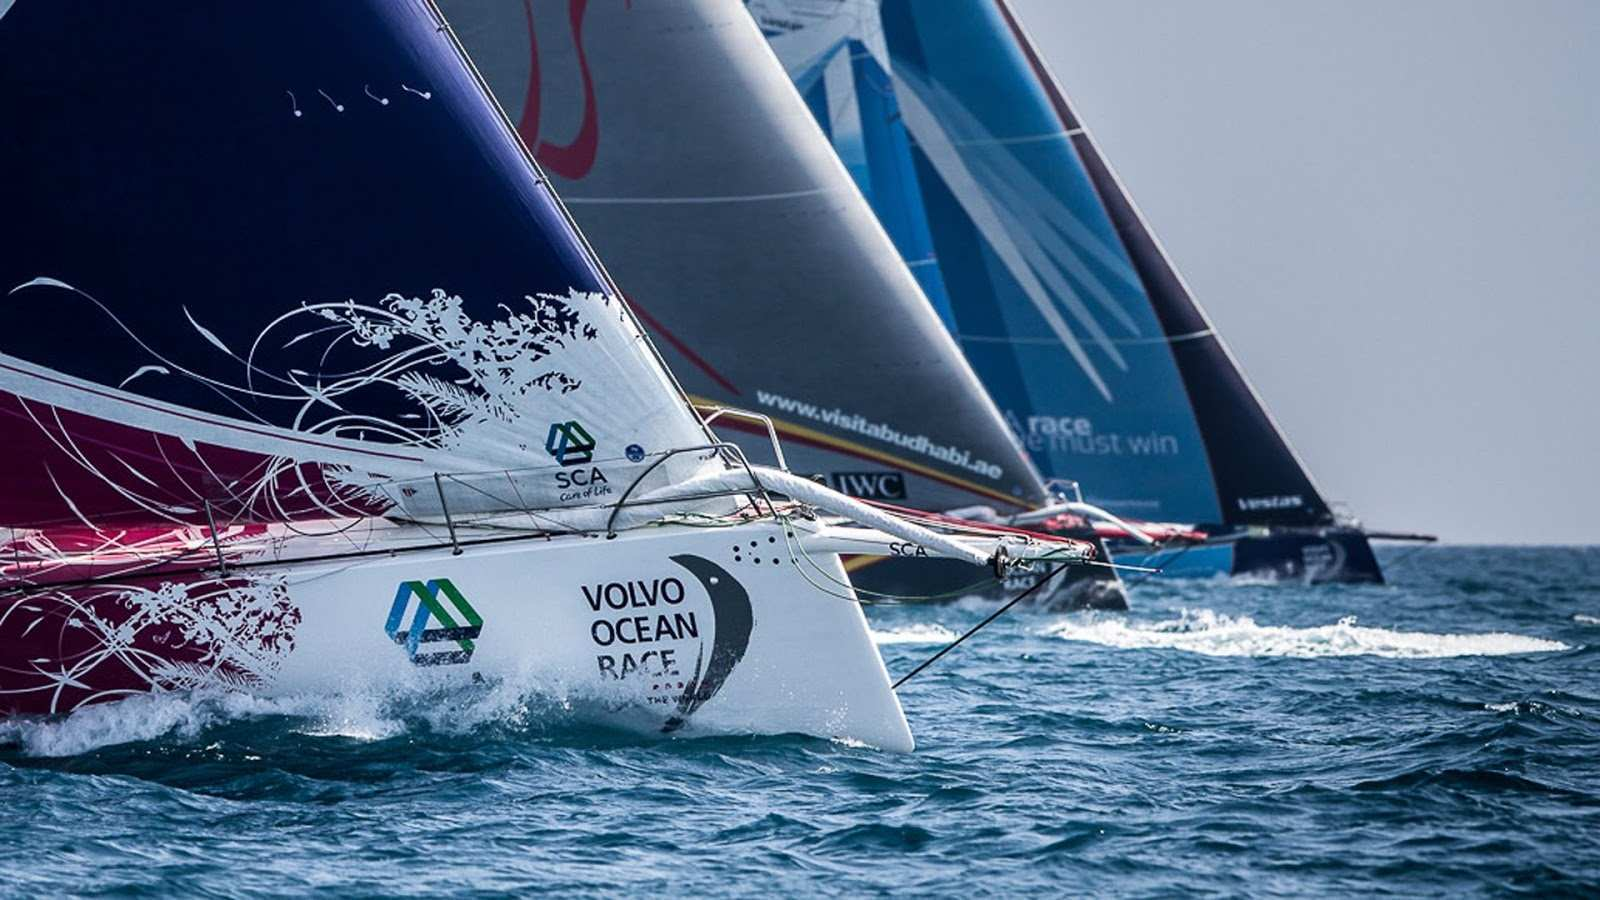 70 Concept of 2020 Volvo Ocean Race Images with 2020 Volvo Ocean Race